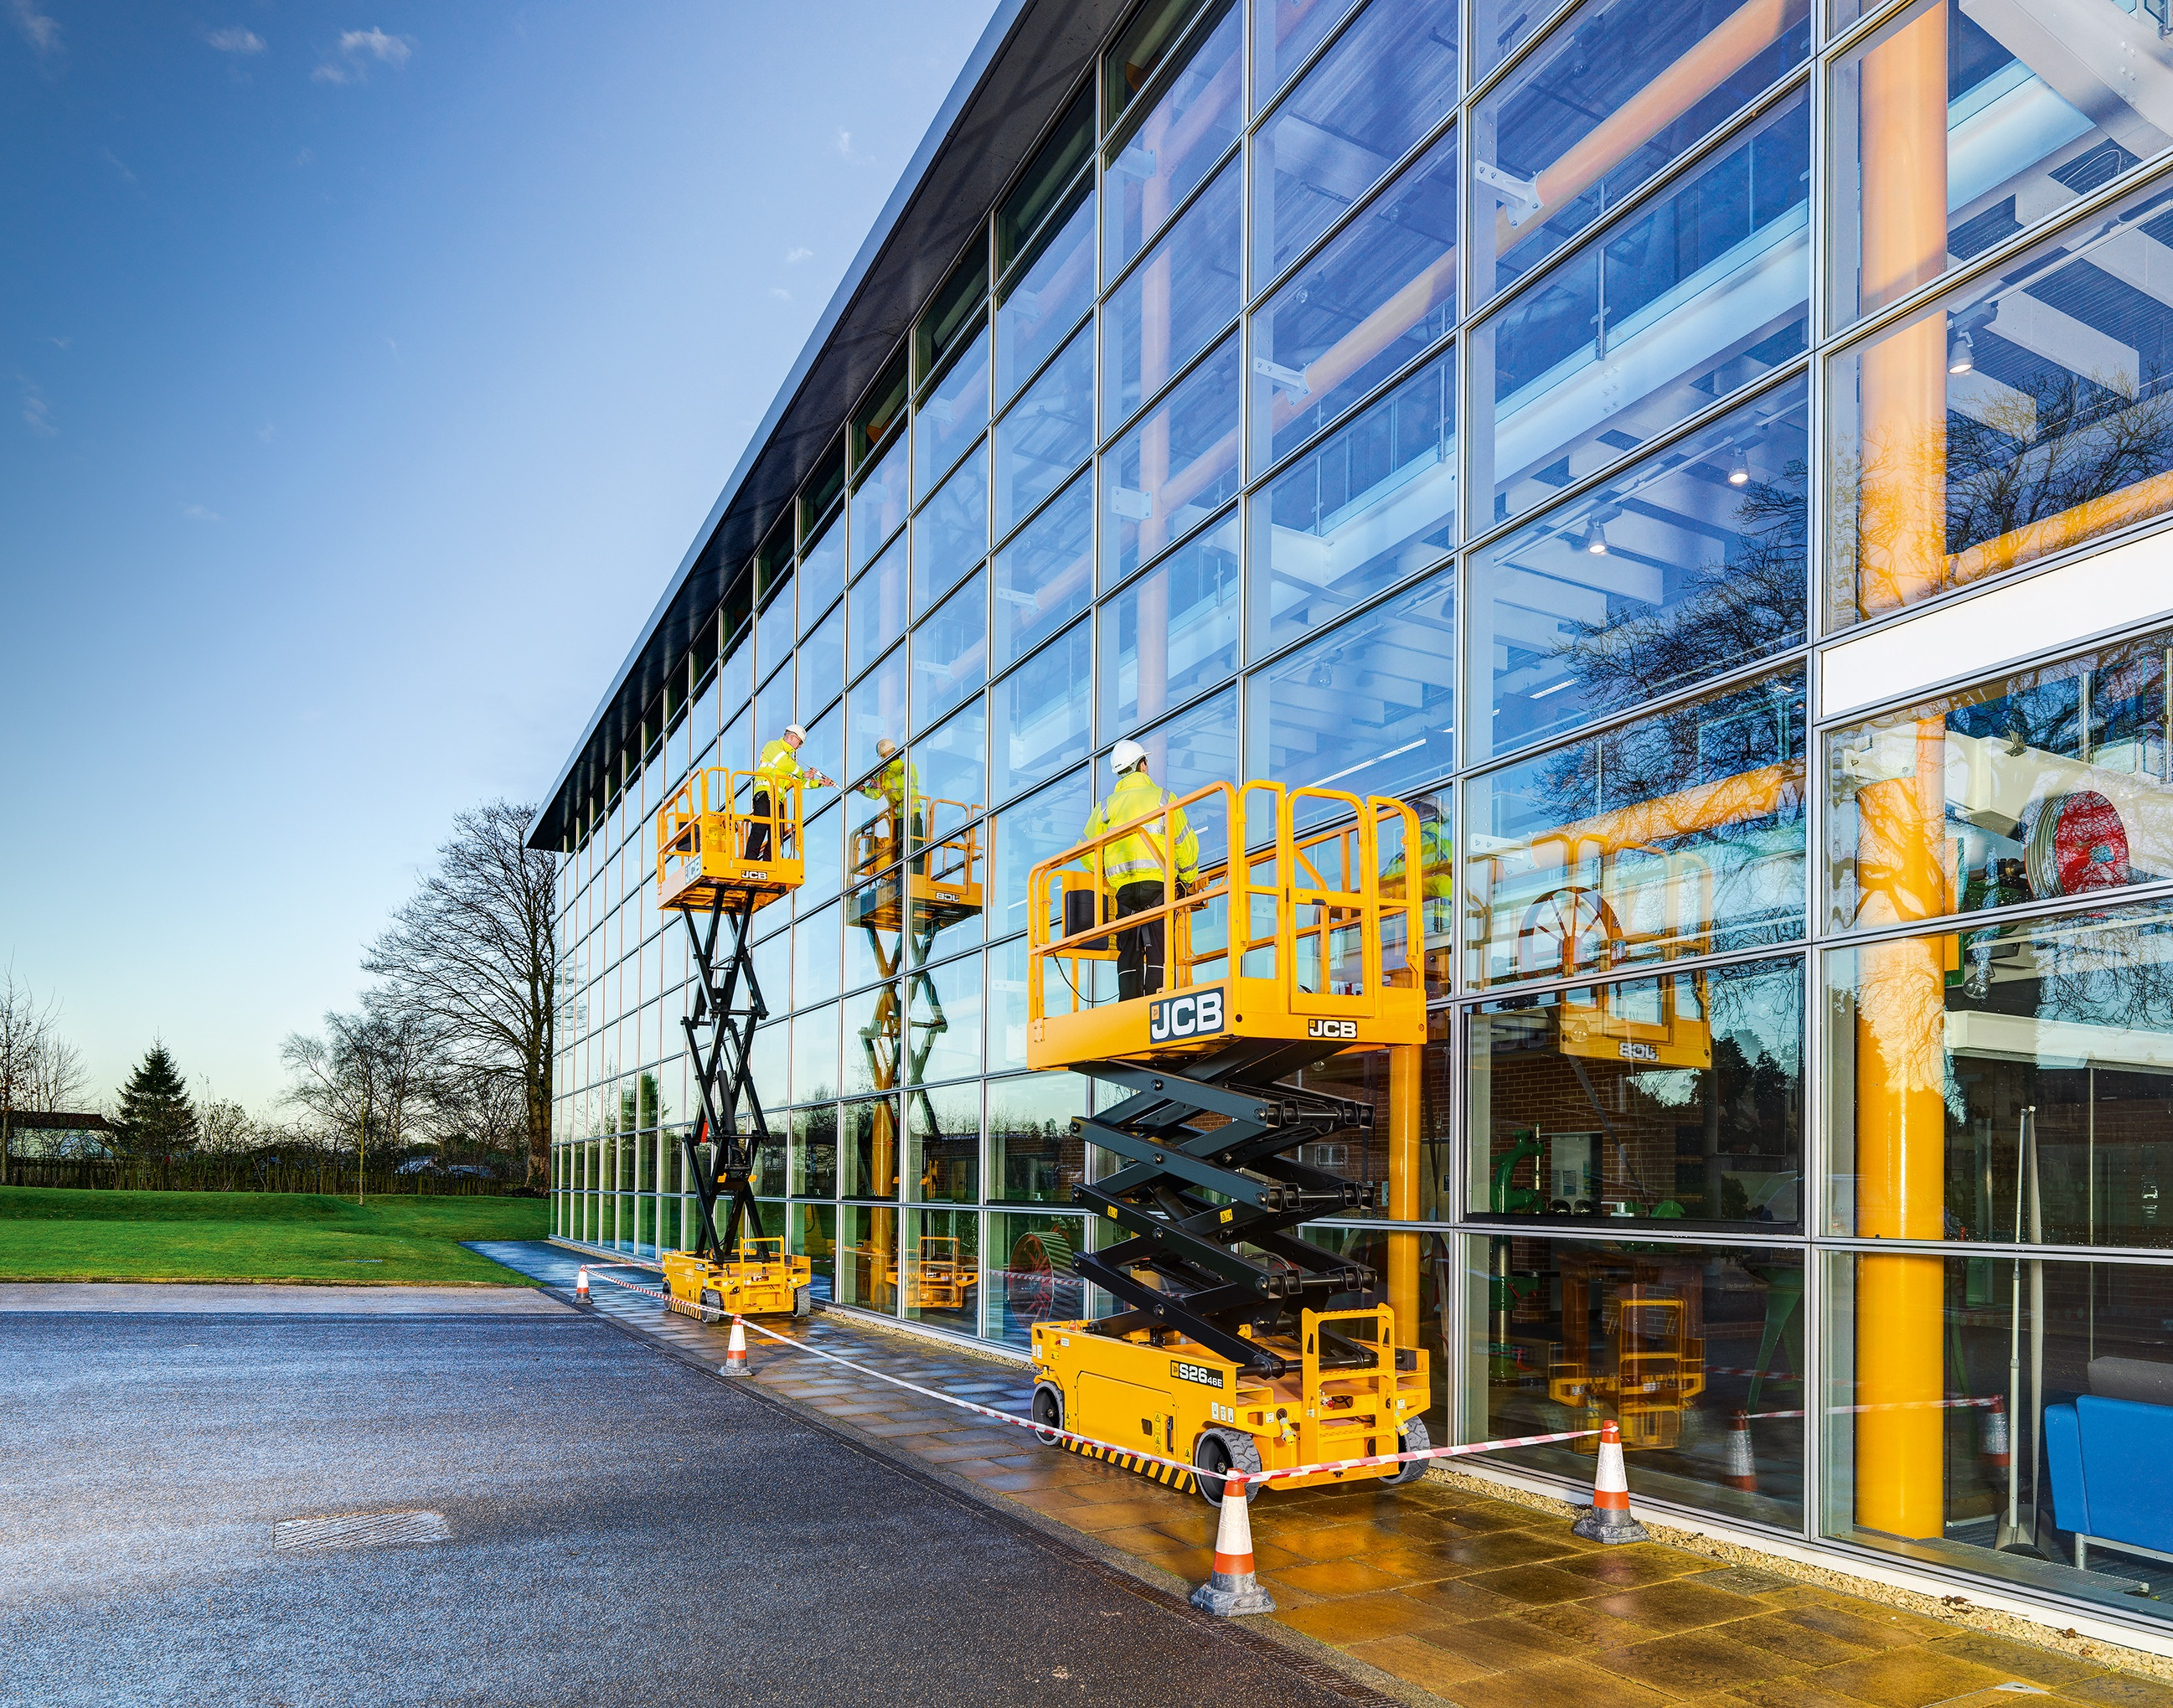 JCB introduced its first nine products to signal its entrance into the aerial lift market.